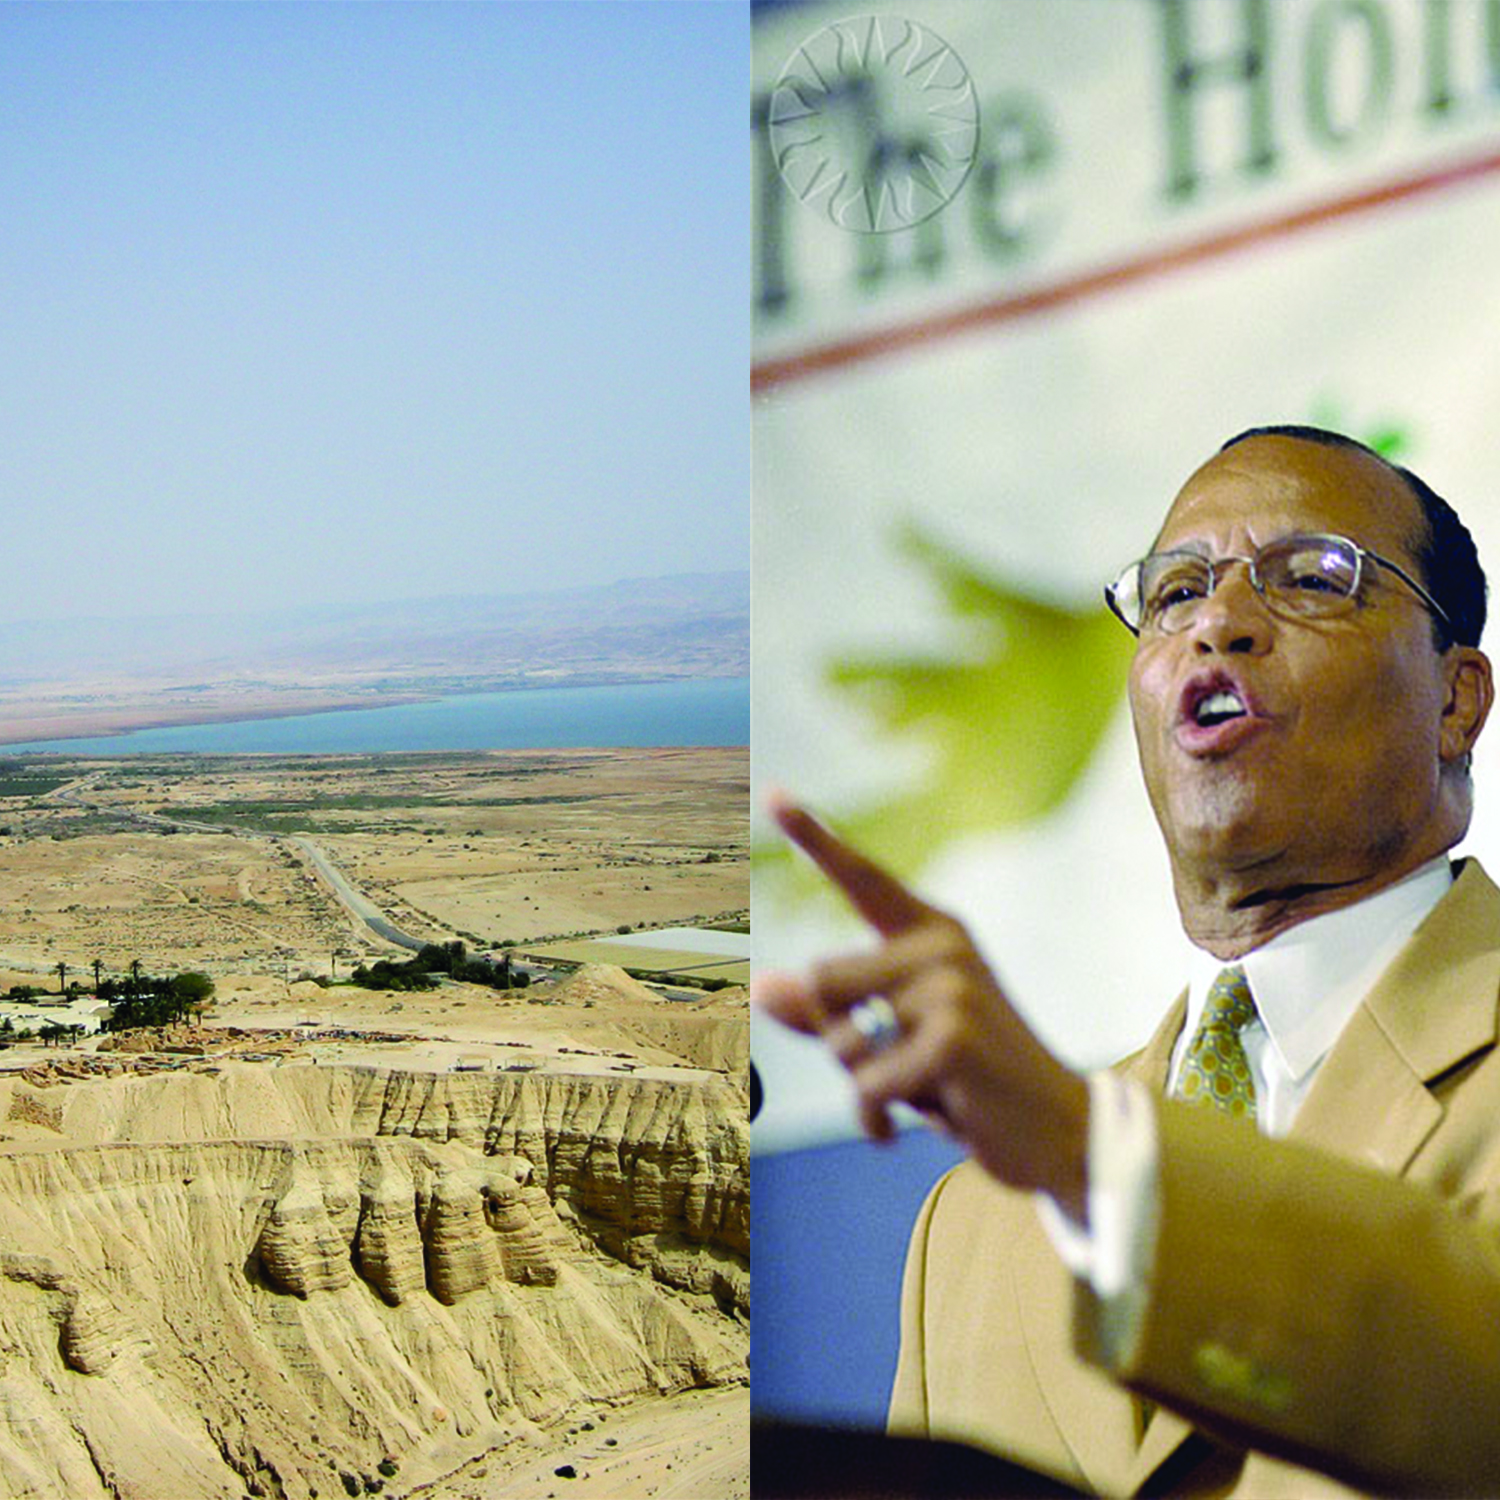 Qumran and Farrakhan